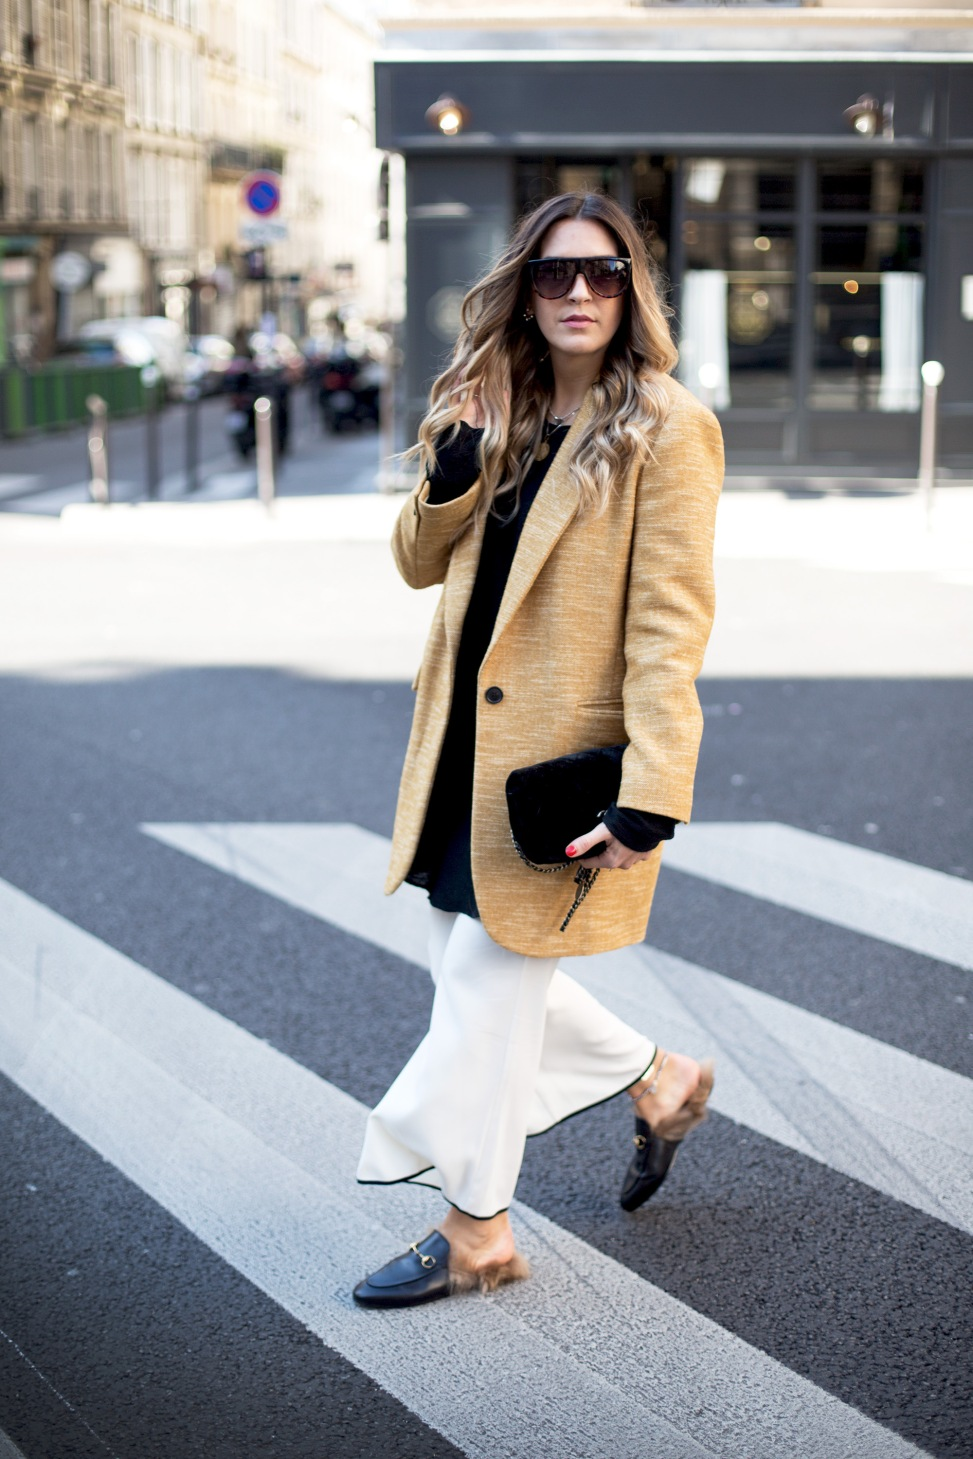 black-palms-streetstyle-paris-gucci-slipper-chanel-isabel-marant-3